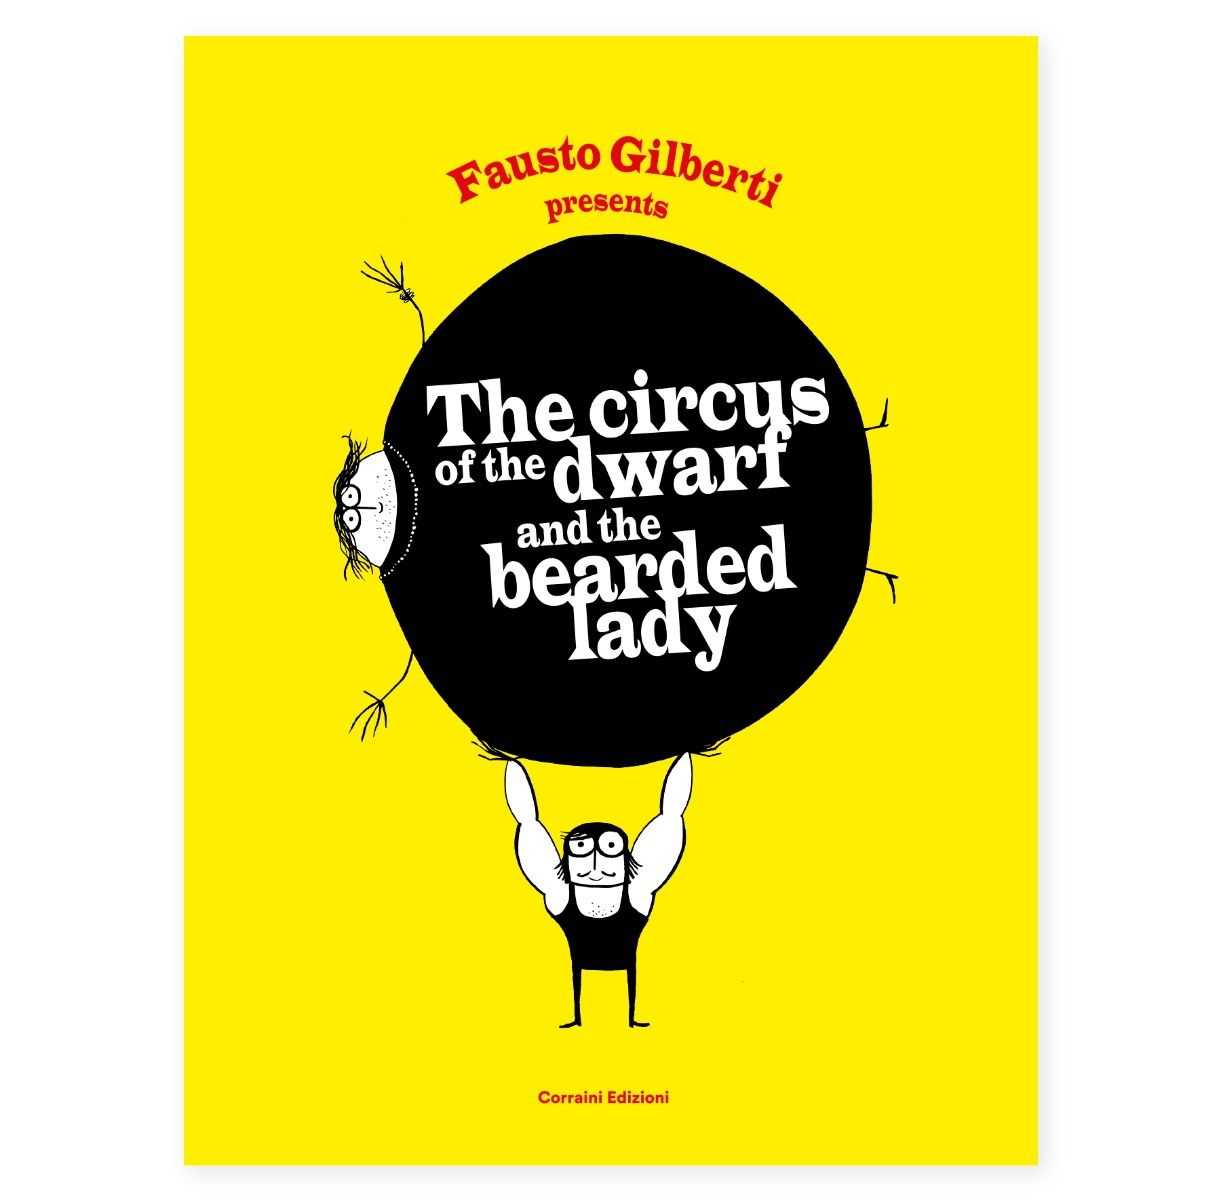 The circus of the dwarf and the bearded lady